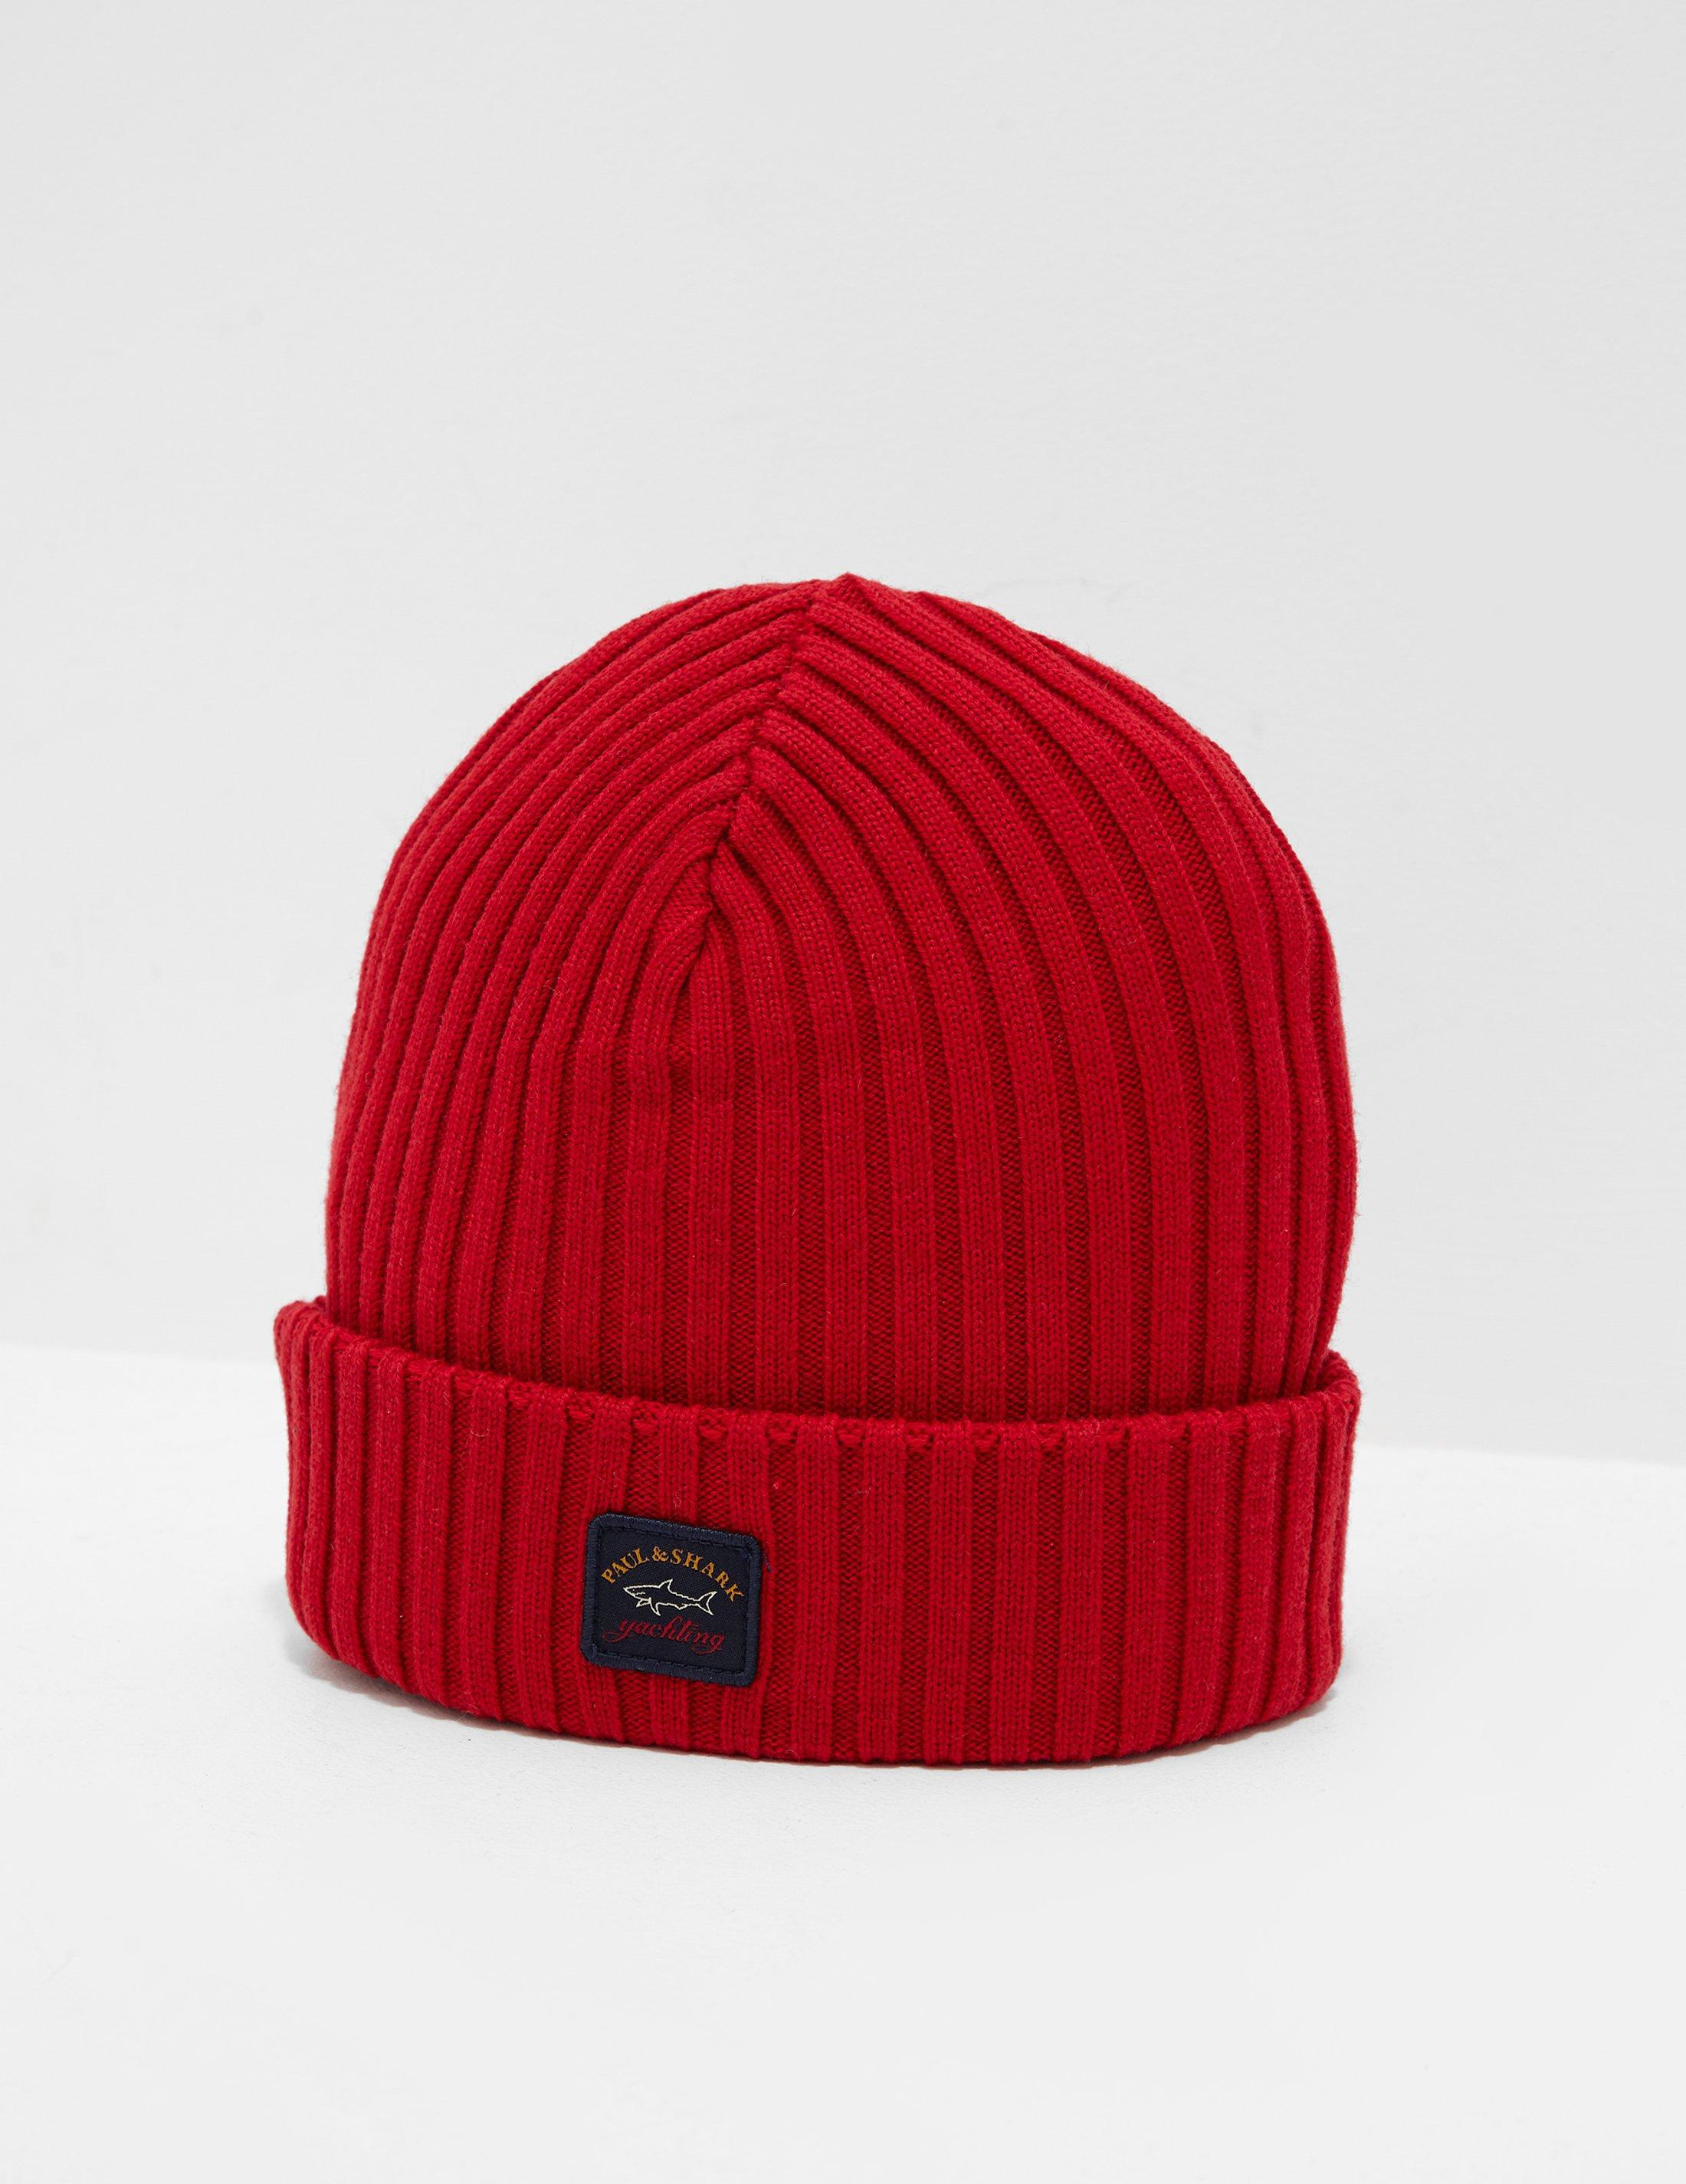 078a56b1d51 Paul   Shark Mens Patch Beanie Red in Red for Men - Lyst